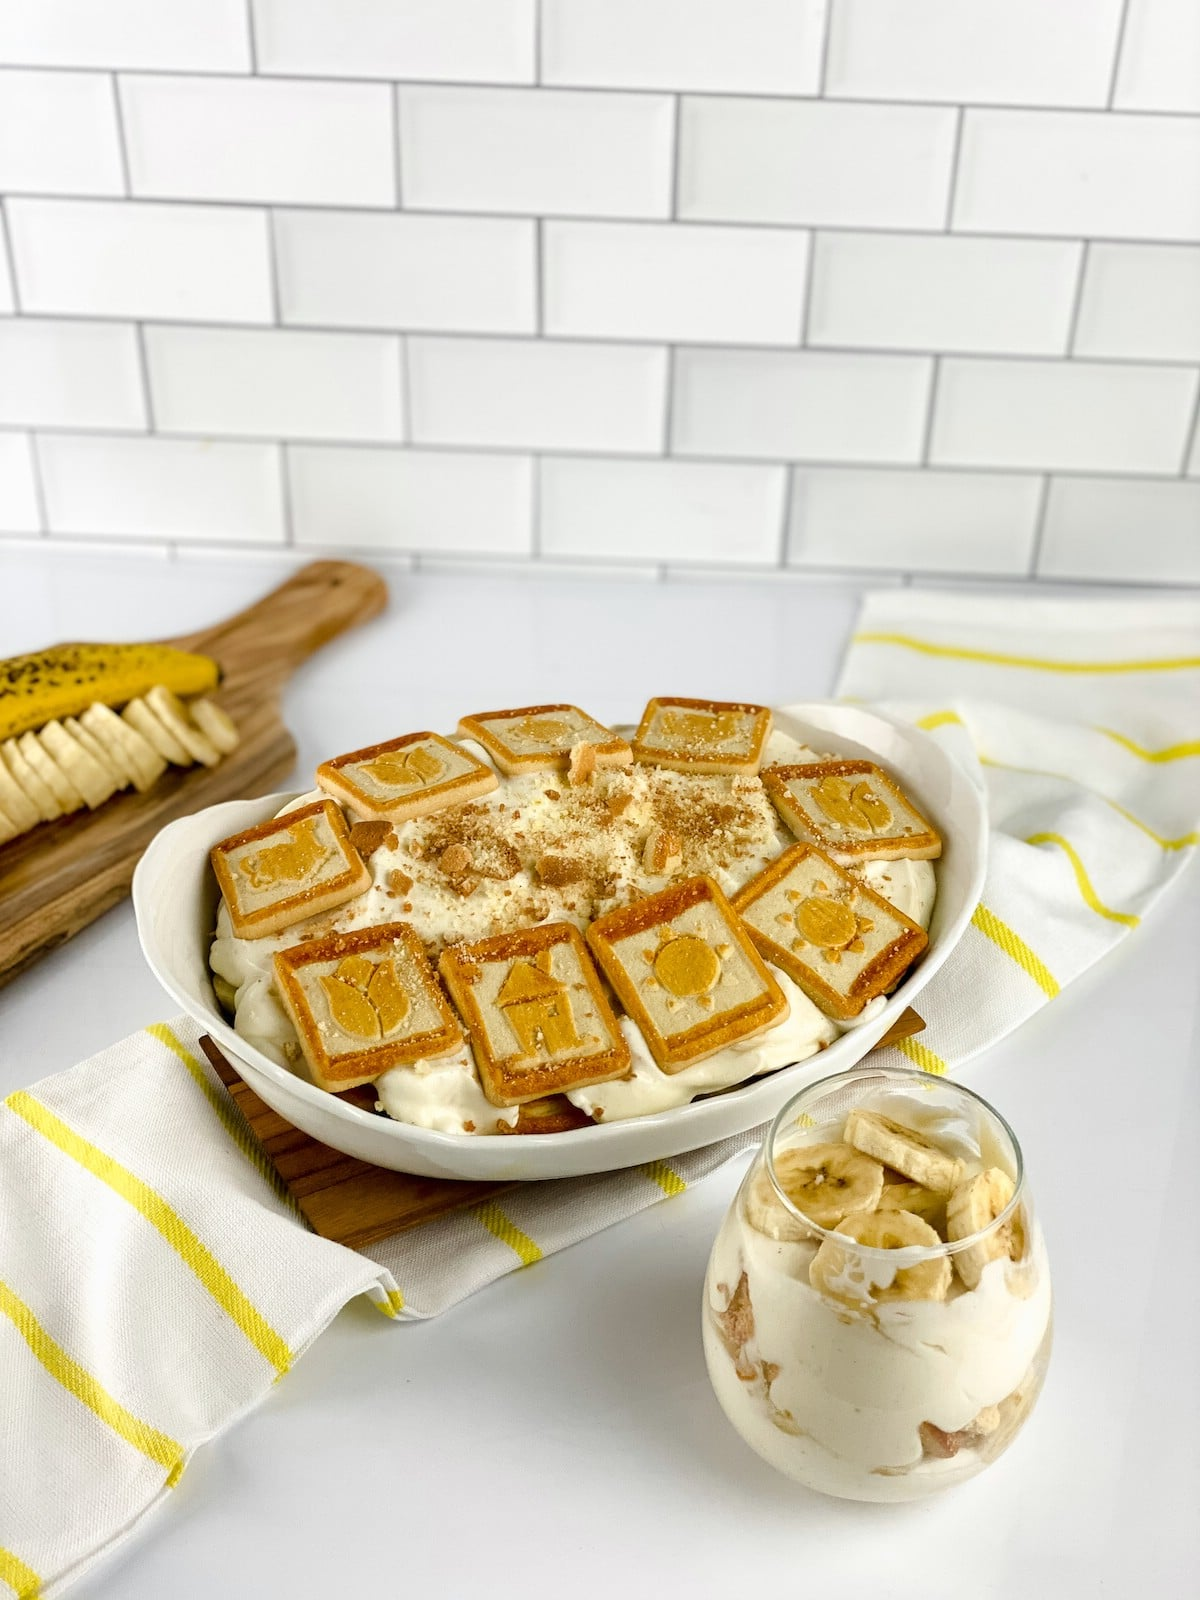 Individual servings of banana pudding in glasses by large bowl